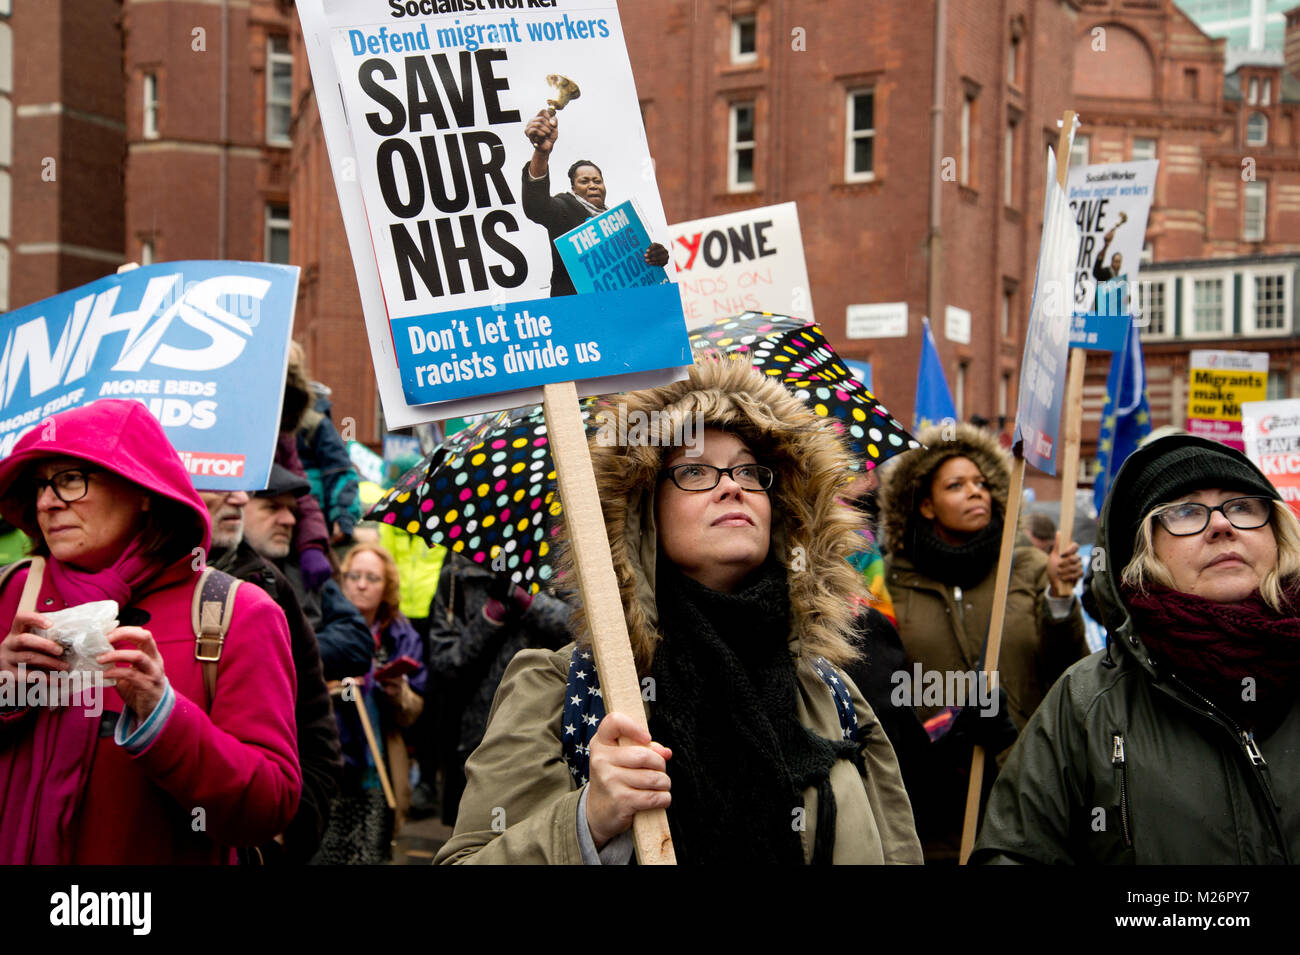 Demonstration called by the People's Assembly in support of the NHS (National Health Service}. A group of women - Stock Image